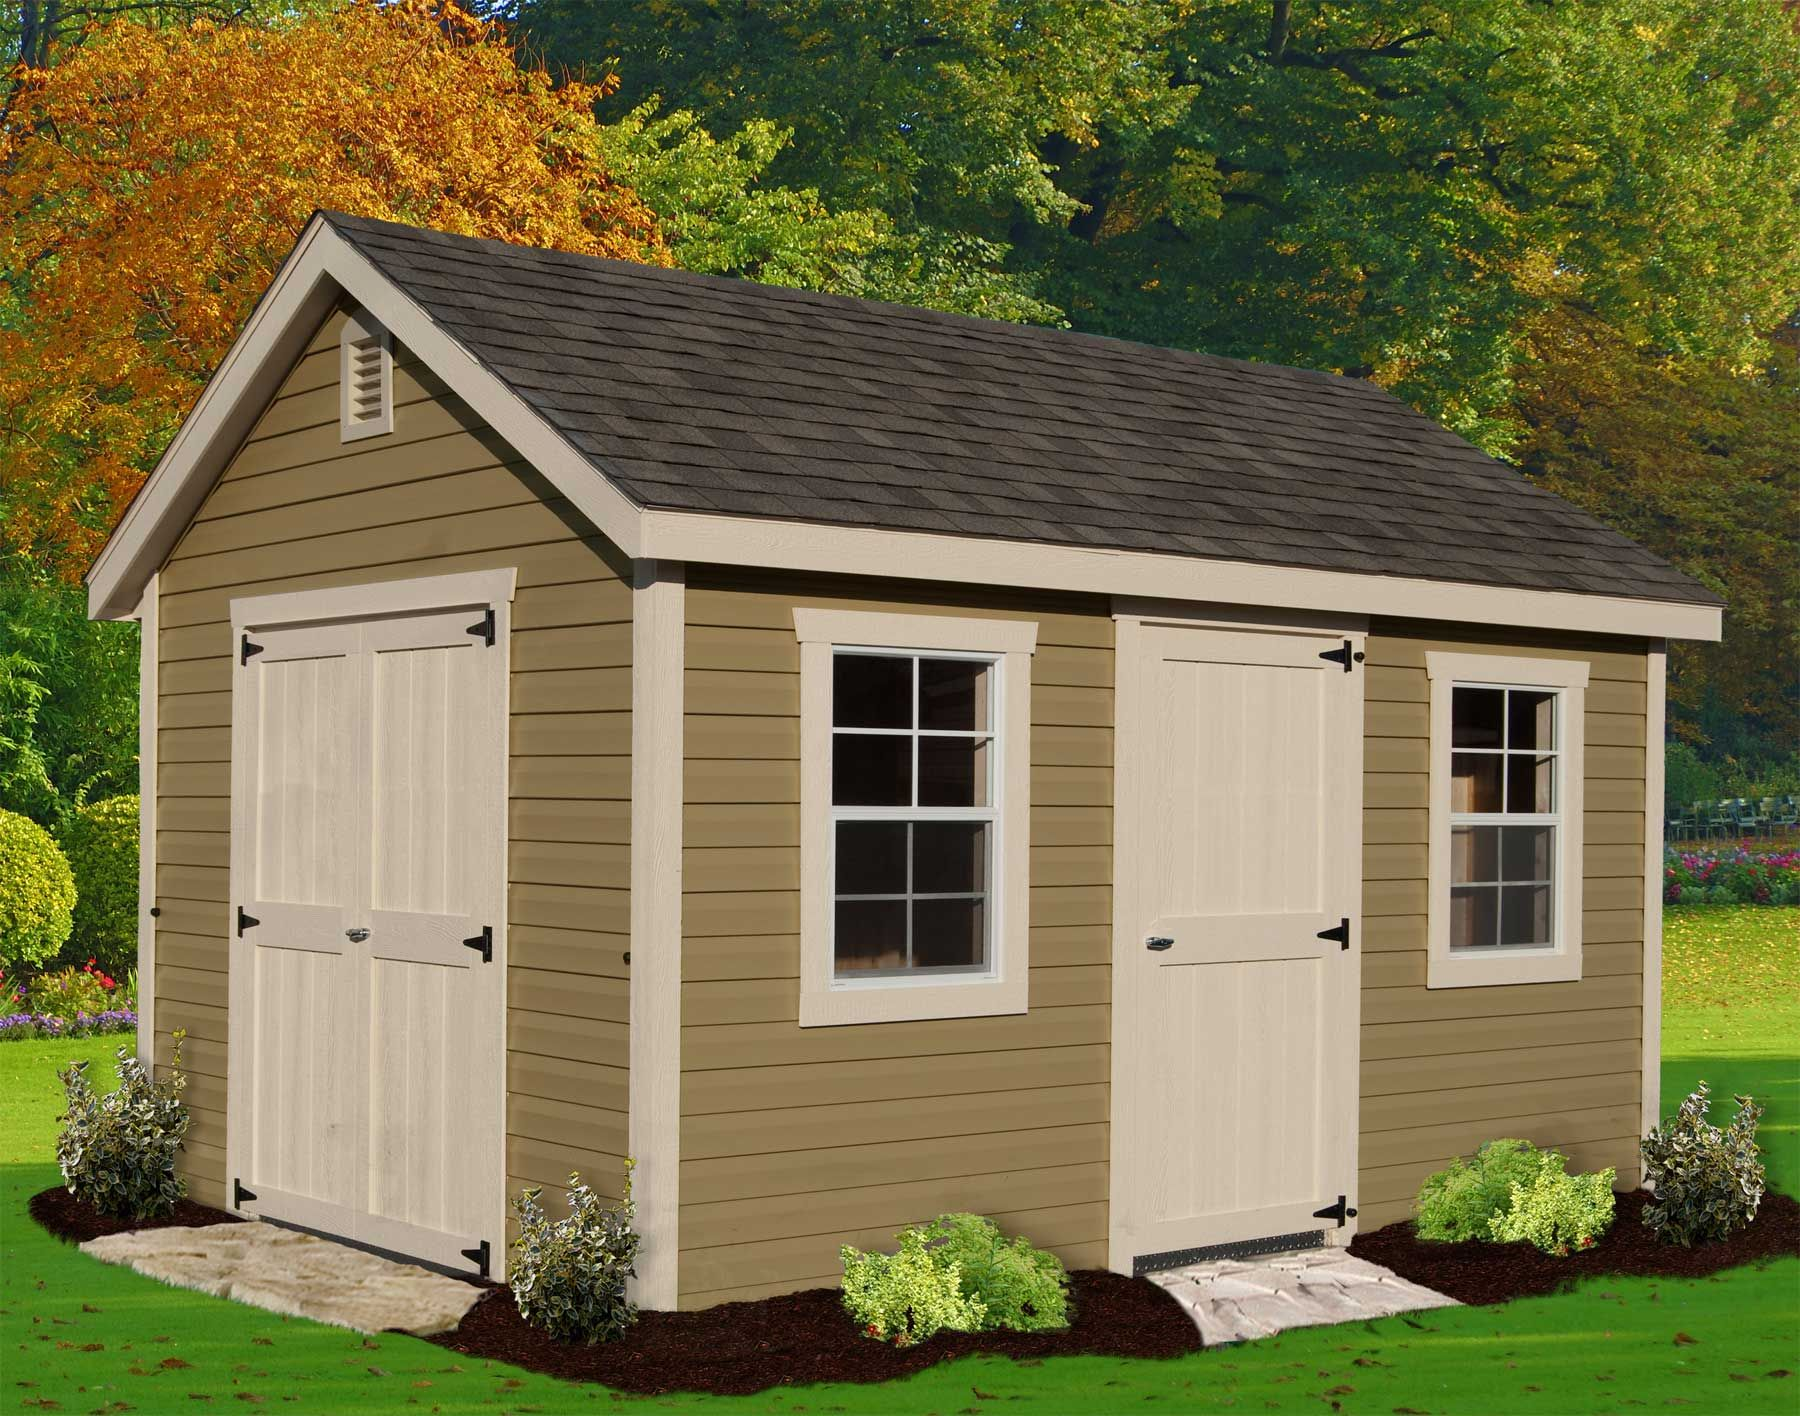 Vinyl Siding Deluxe Estate Sheds Sheds By Siding Backyard Storage Sheds Backyard Sheds Shed Plans 12x16